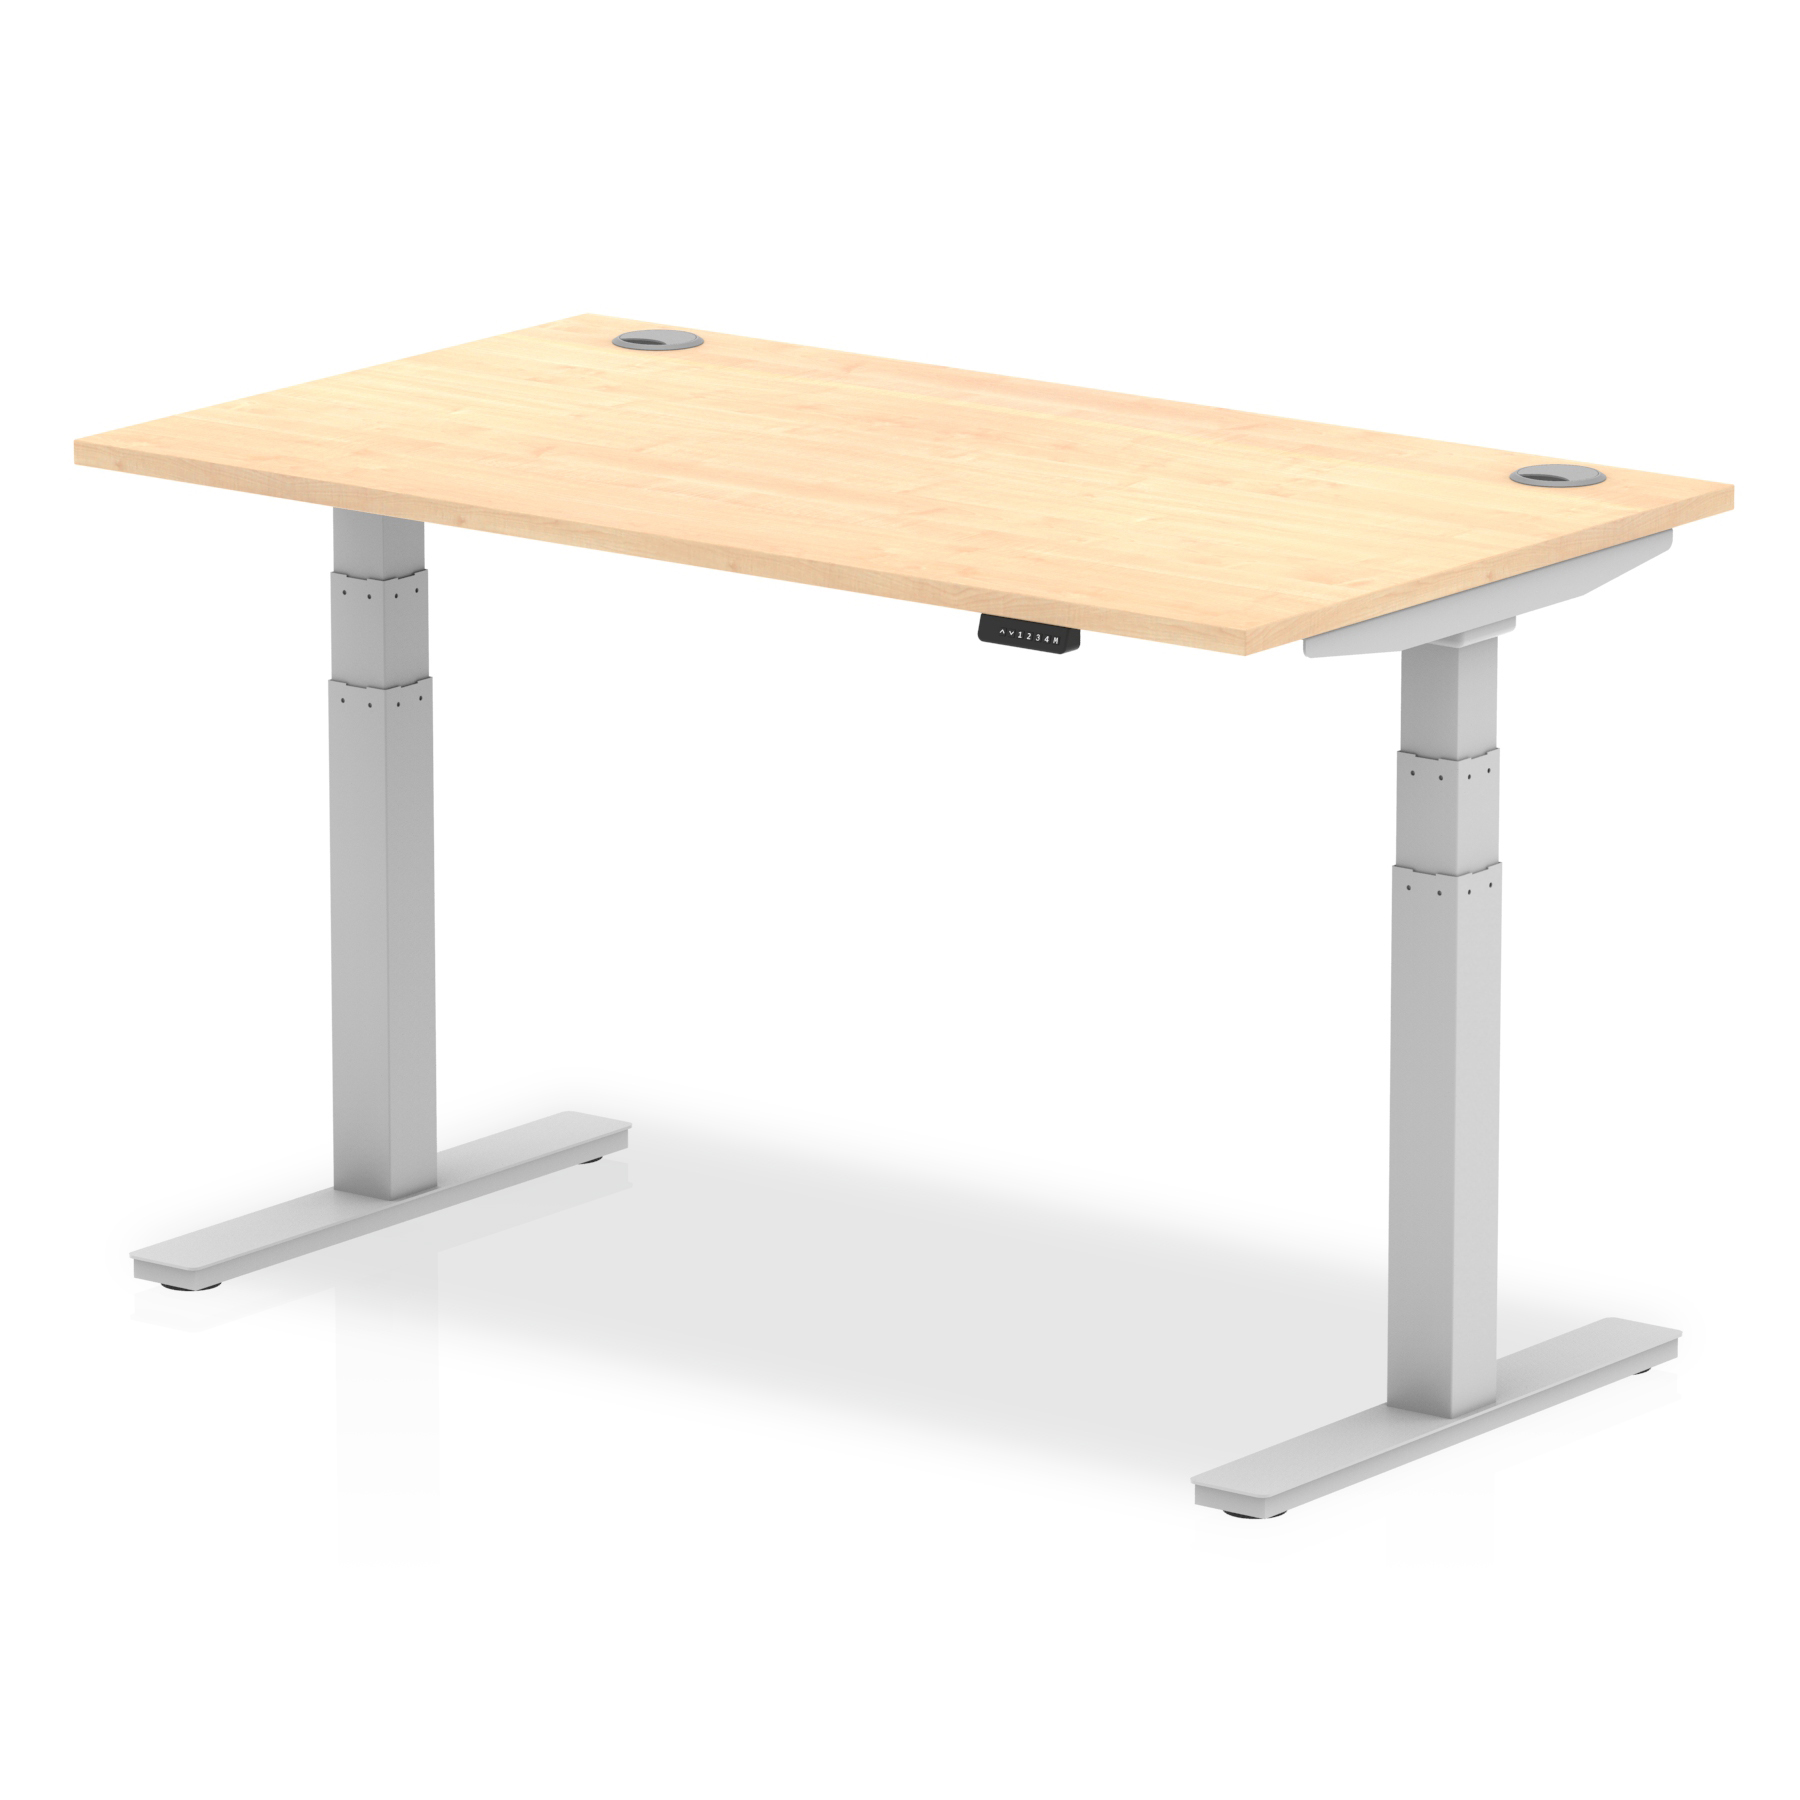 Trexus Sit Stand Desk With Cable Ports Silver Legs 1400x800mm Maple Ref HA01094